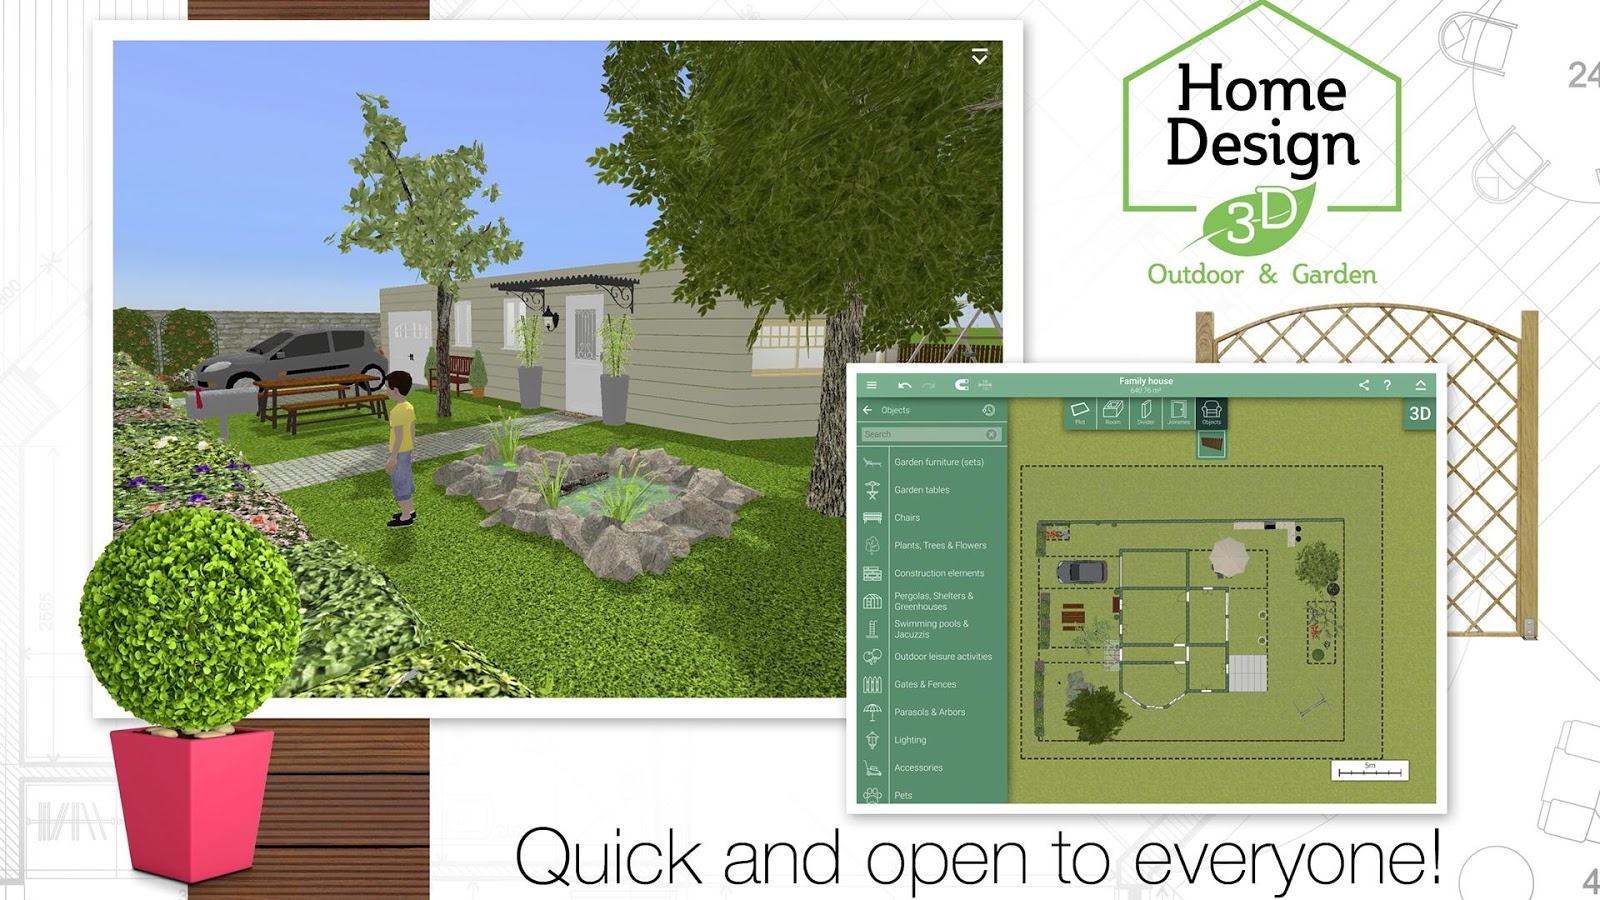 Home design 3d outdoor garden android apps on google play Online 3d home design tool